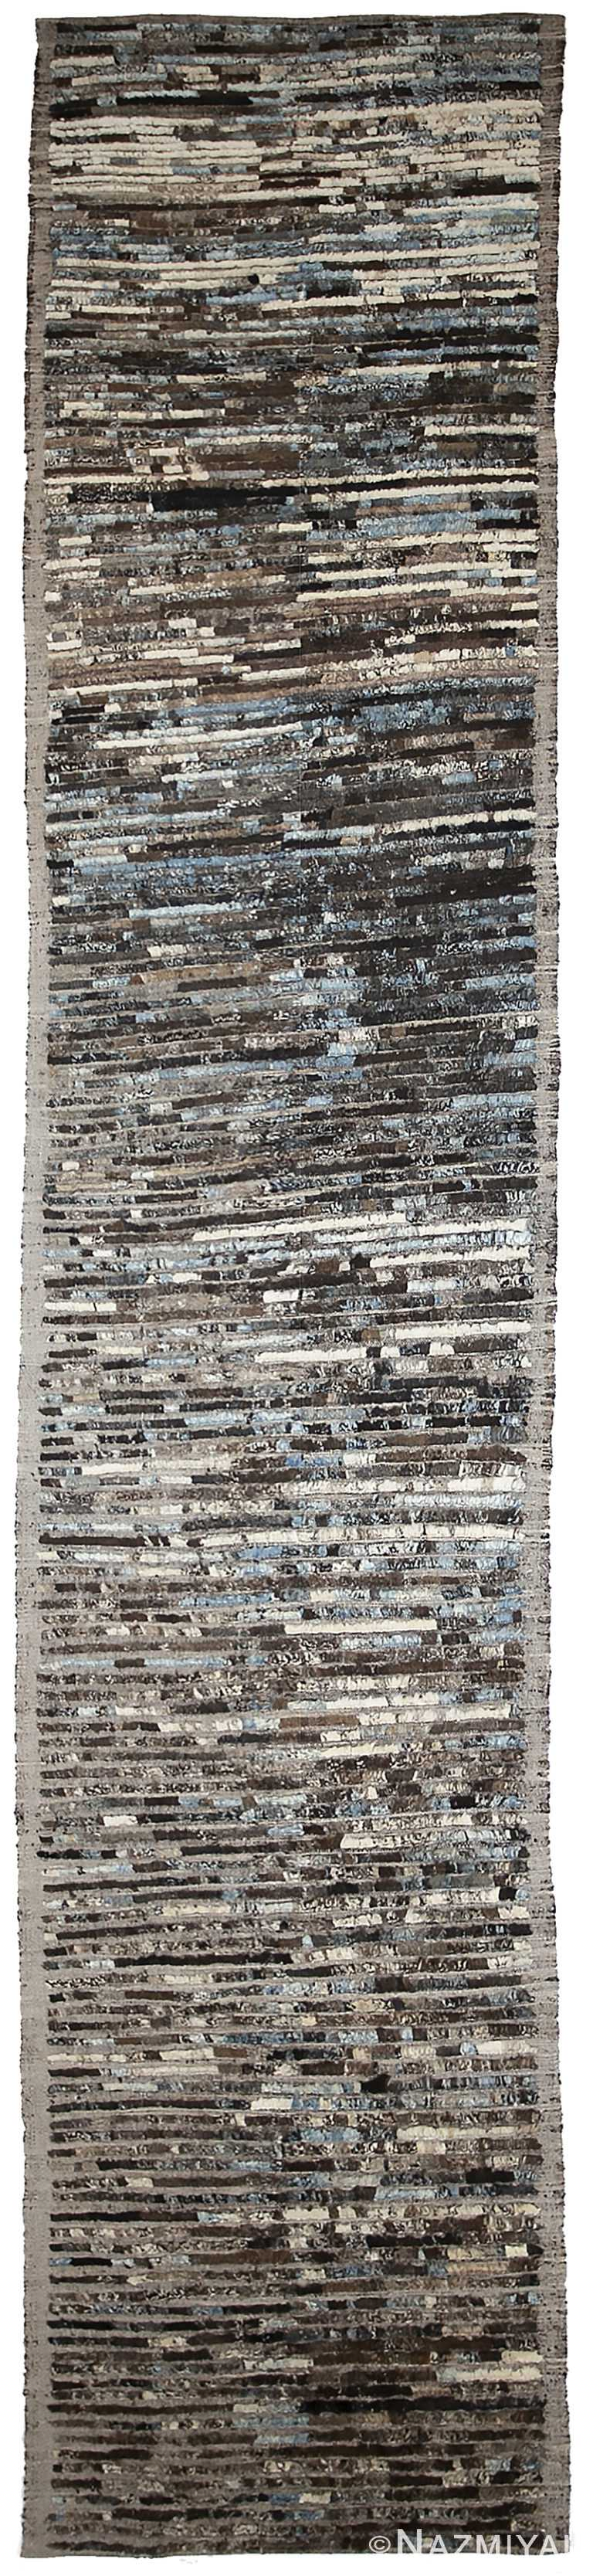 Brown Modern Moroccan Style Afghan Runner Rug 60164 by Nazmiyal NYC